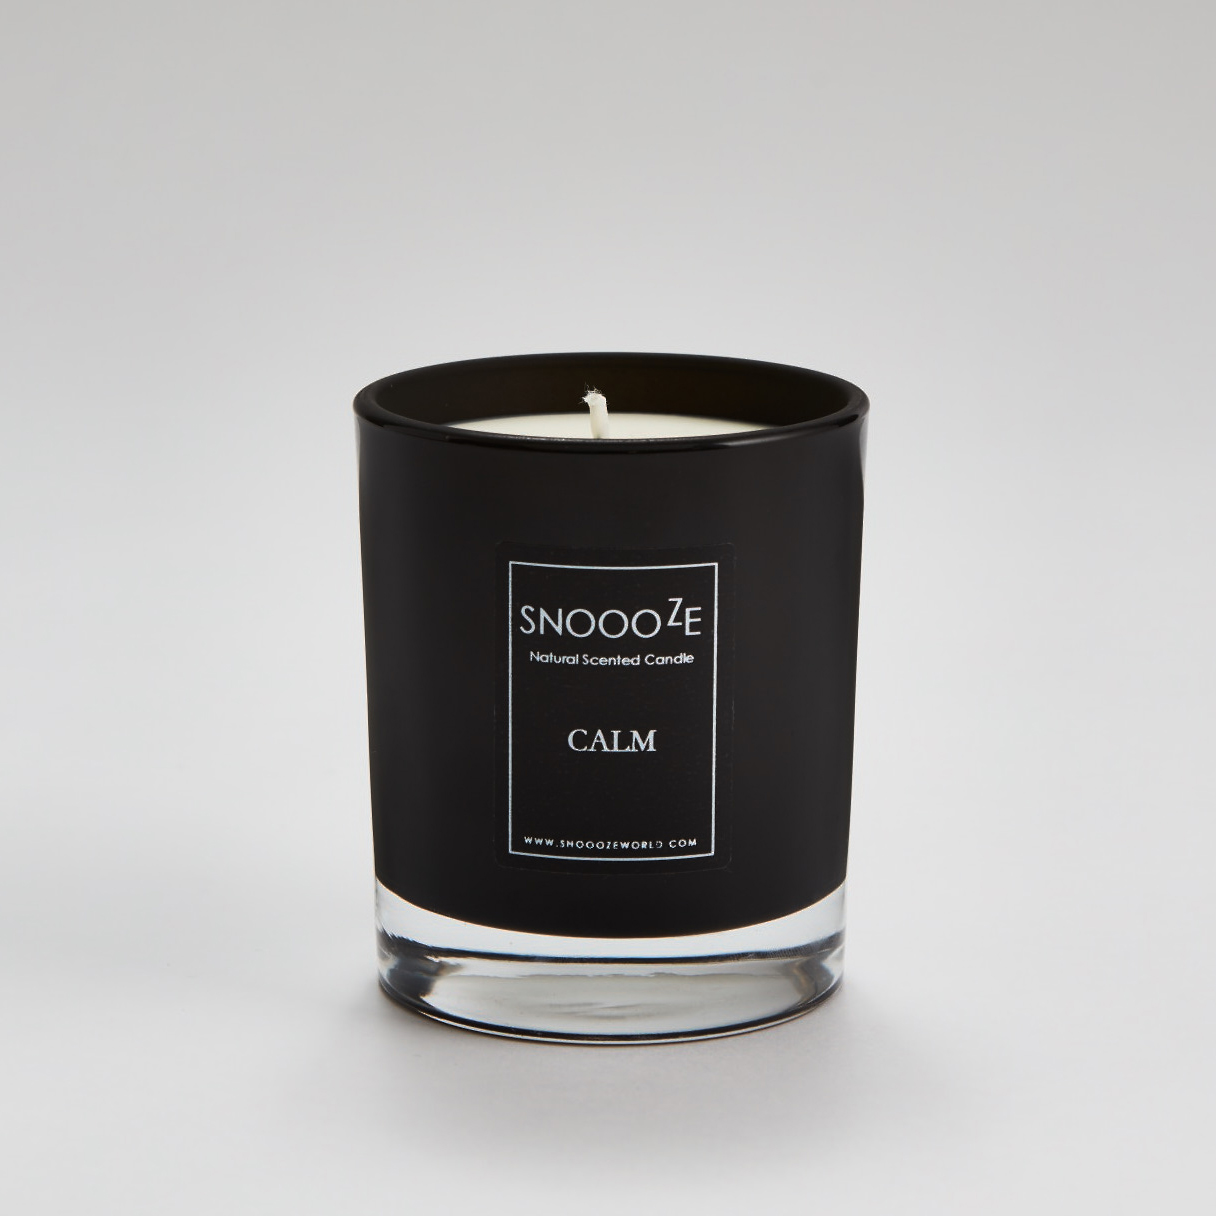 Natural scented candle (calm)